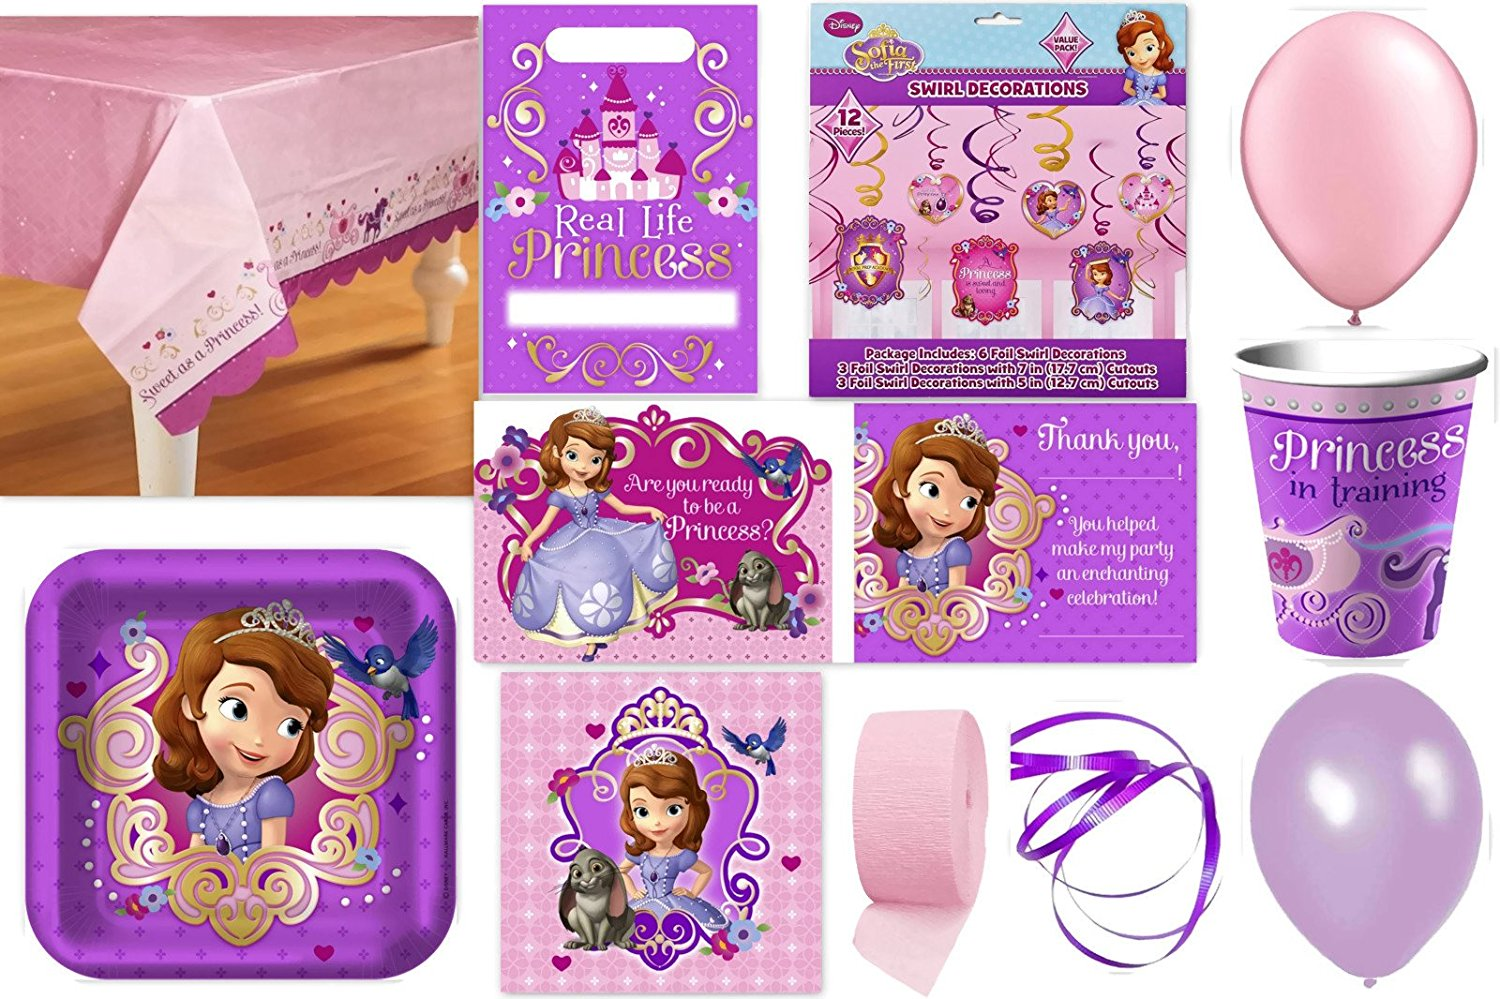 Sofia the First Party Supplies for 16 Guests This Ultimate Party Pack Includes Table Cover, Cups, Napkins, Plates, Treat Bags, Invitations, Swirl Decorations, Curling Ribbon, Streamer, and Balloons - This Bundle Includes 137 Pieces! by Disney